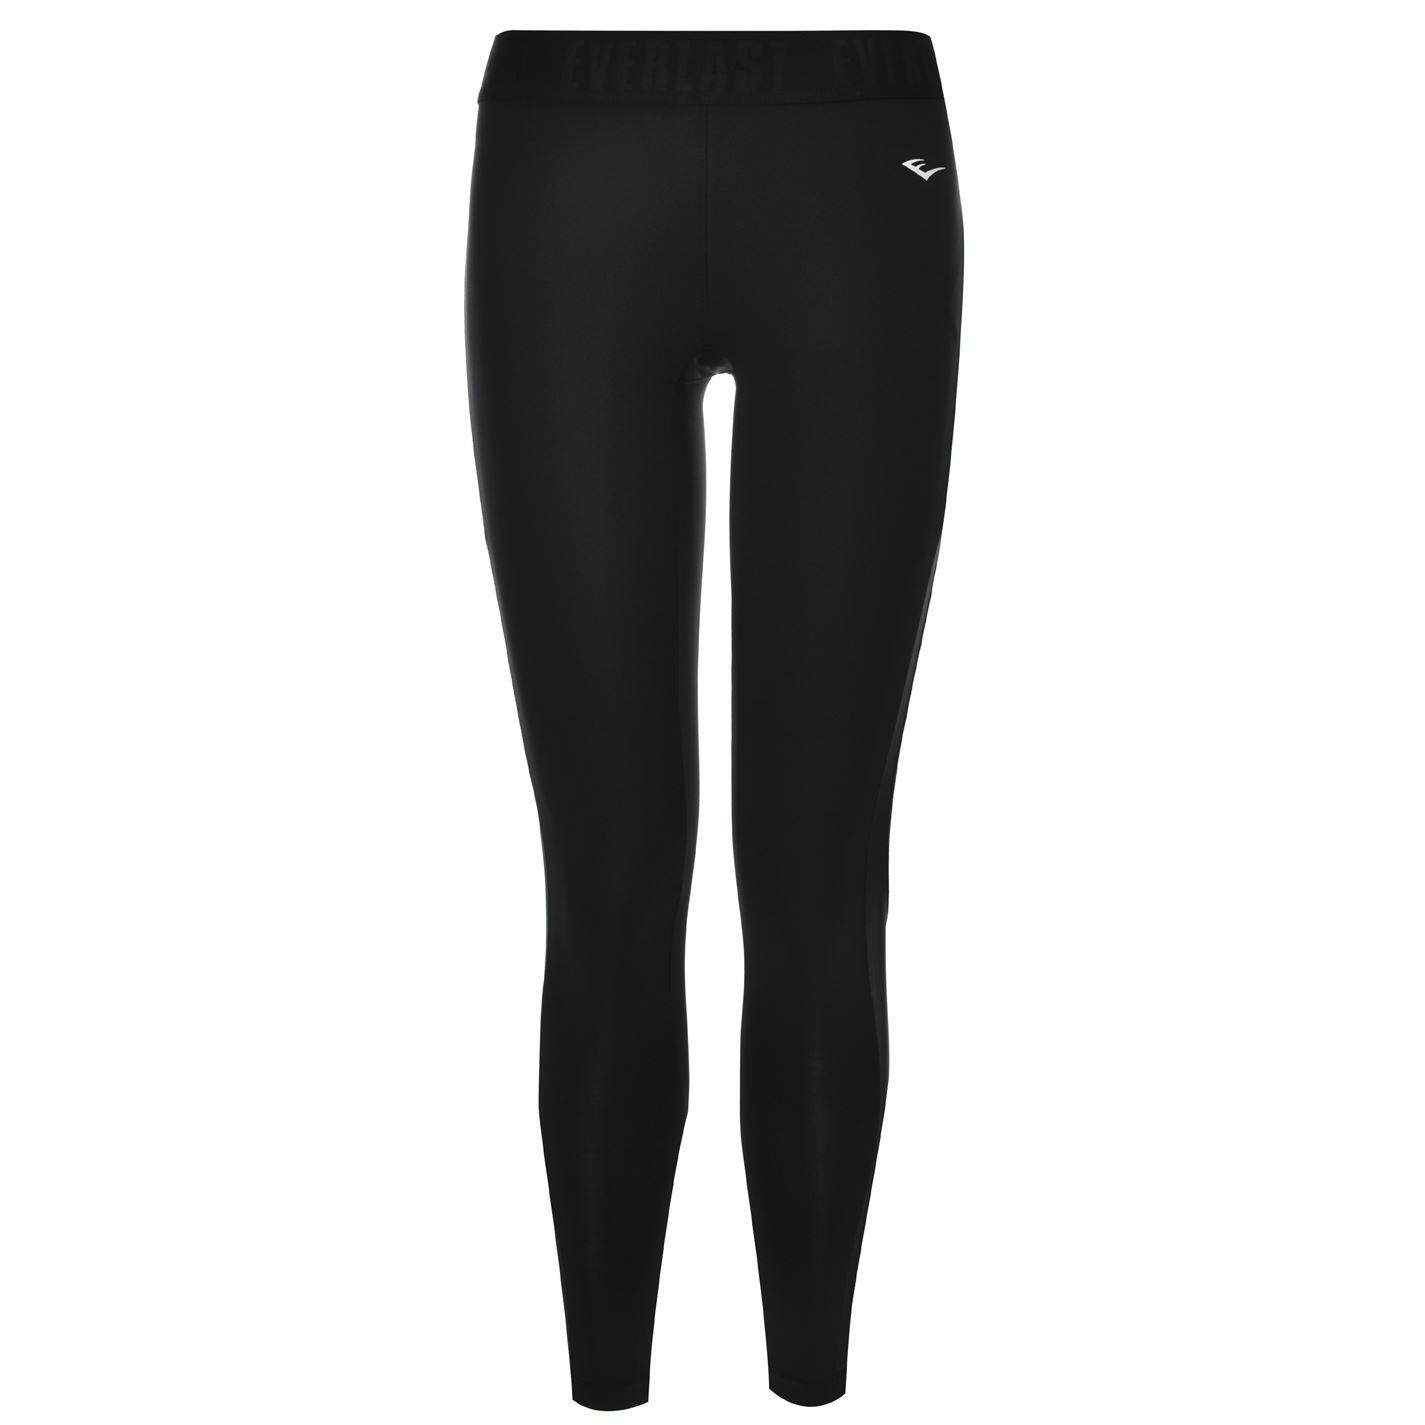 Everlast Womens Pl Tight (black) By Sports Direct Mst Sdn Bhd.